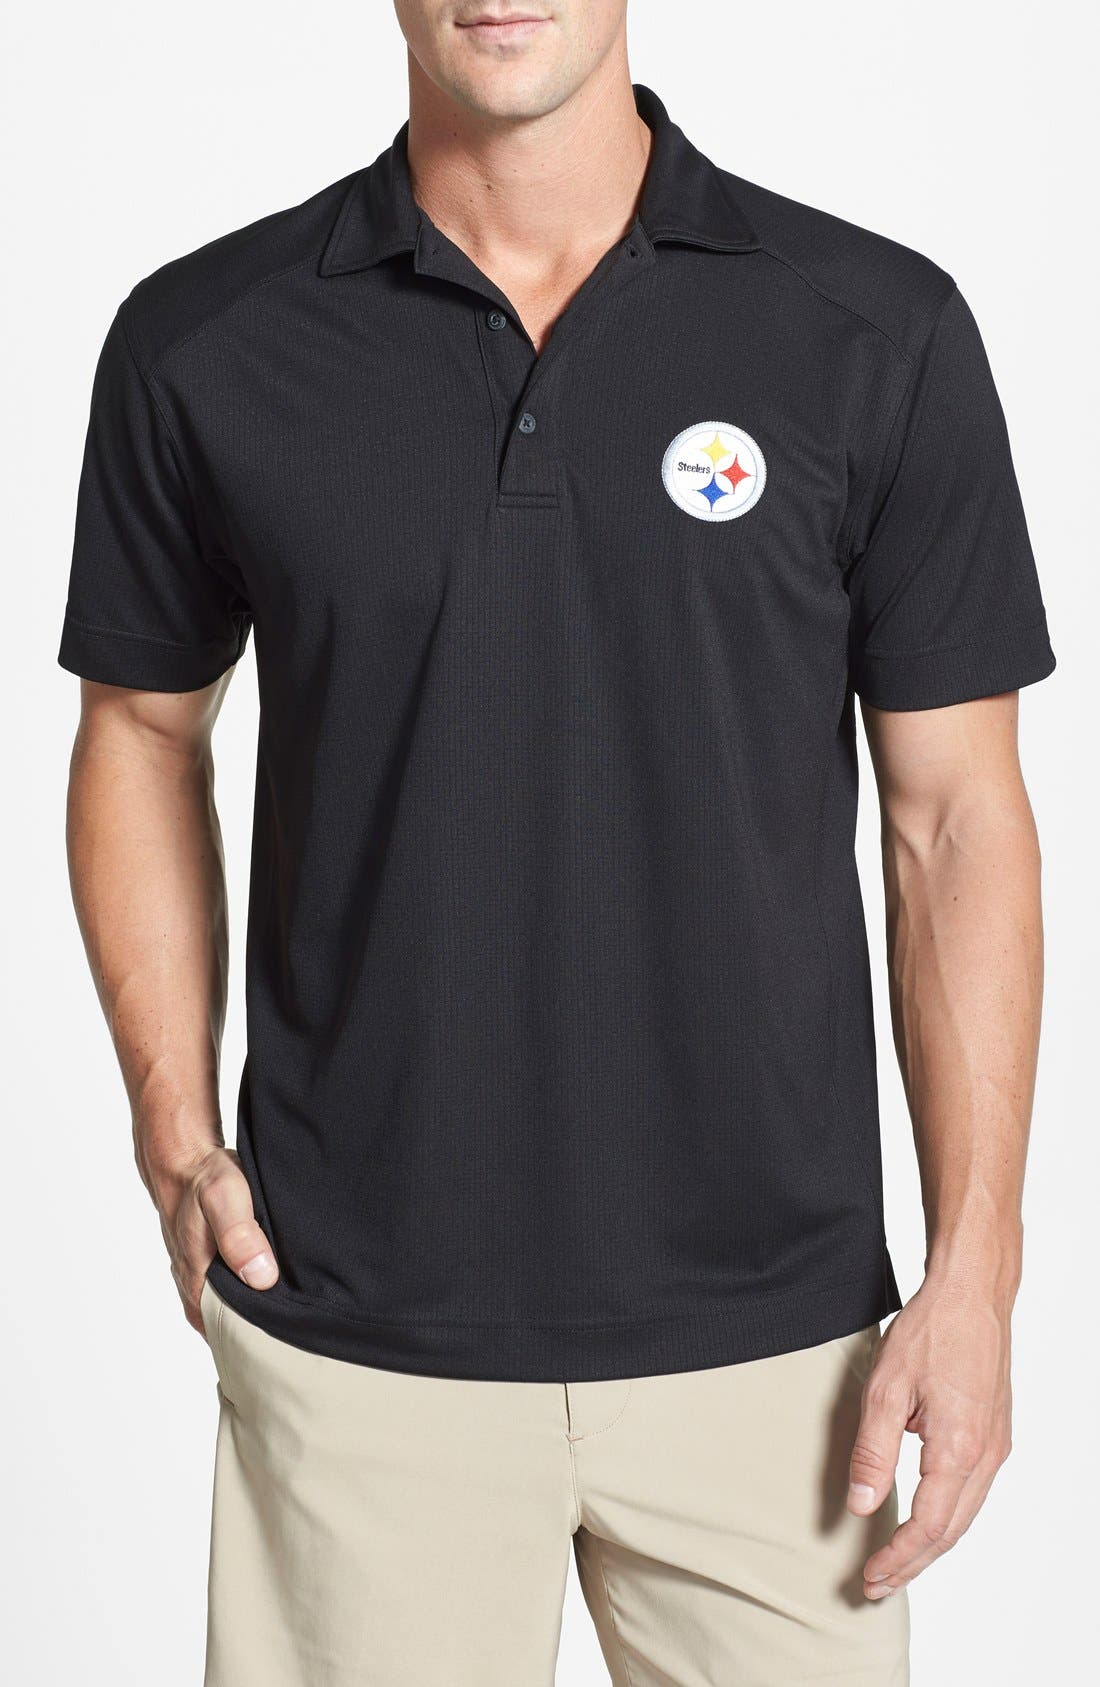 Pittsburgh Steelers - Genre DryTec Moisture Wicking Polo,                         Main,                         color, 001